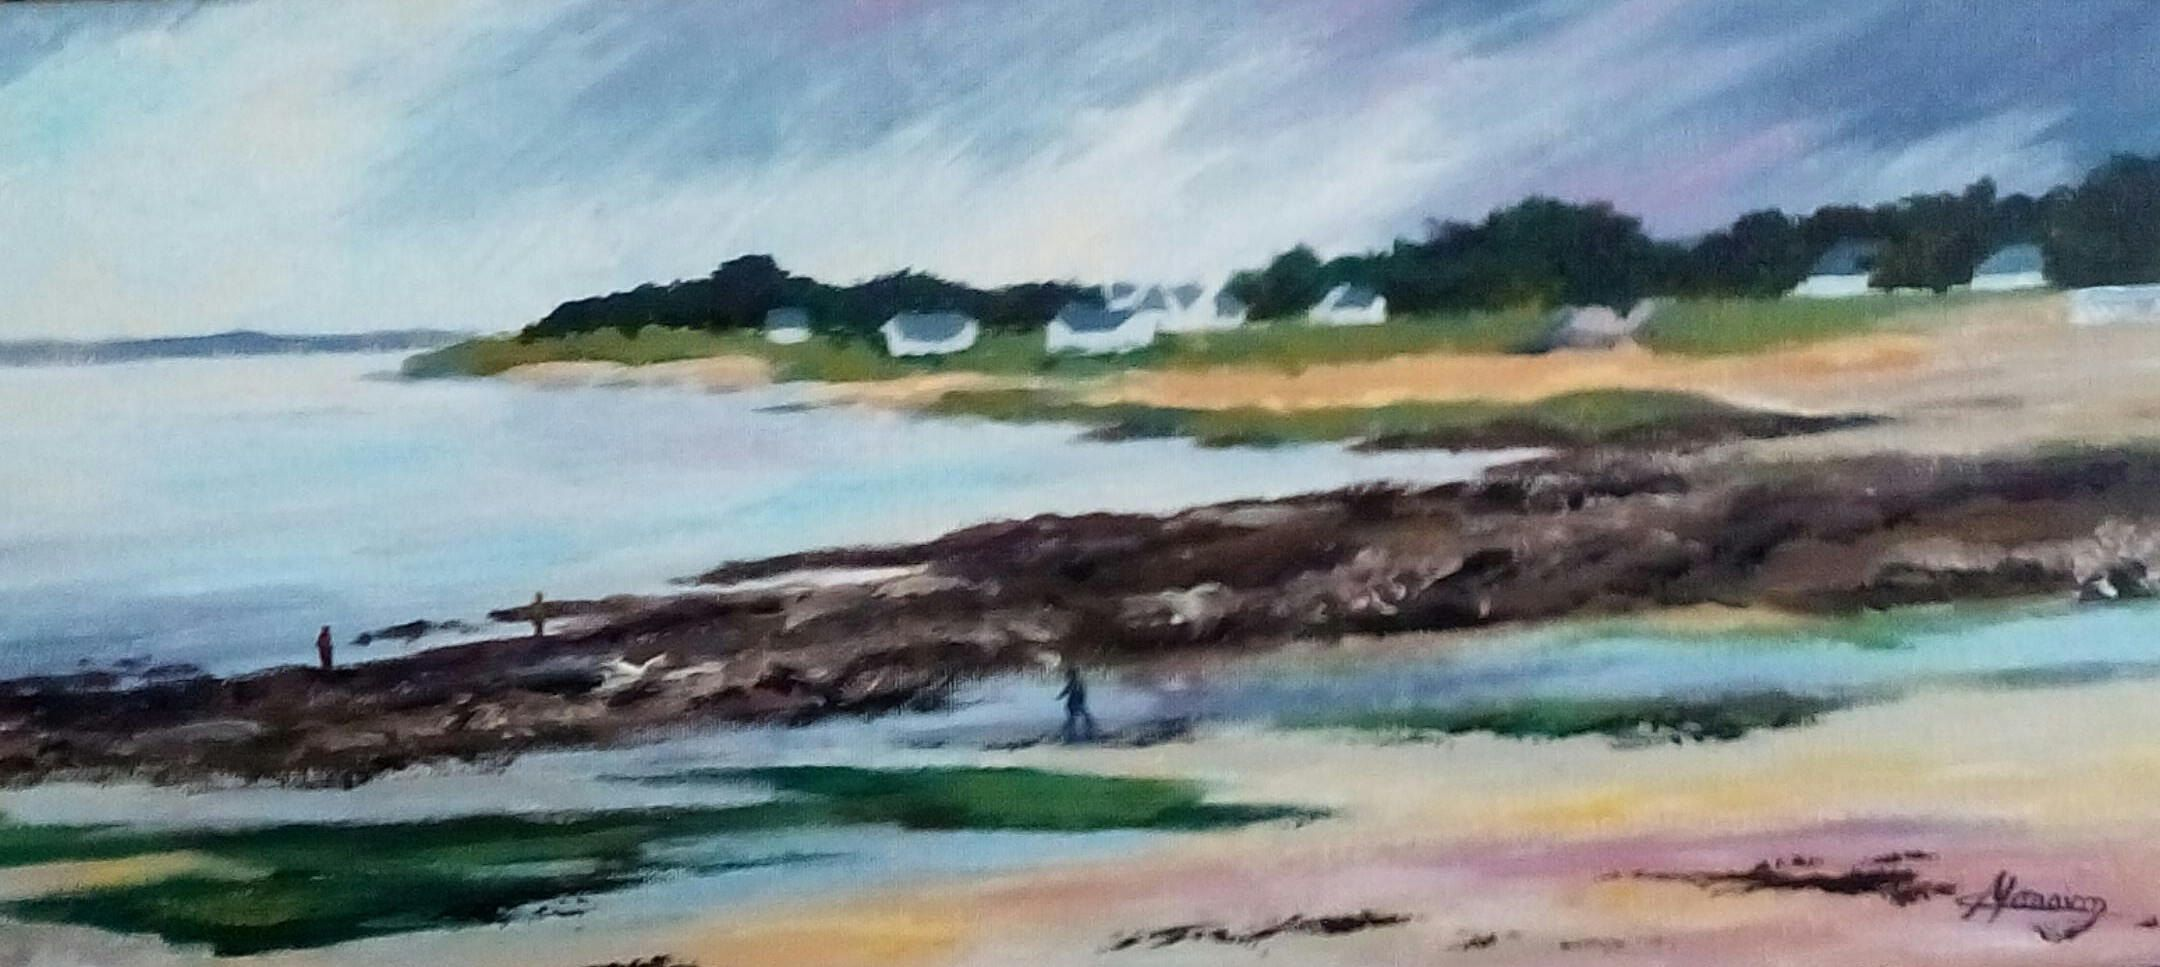 Painting Acrylic Tide Brittany Painting Sea And Rocks Landscape